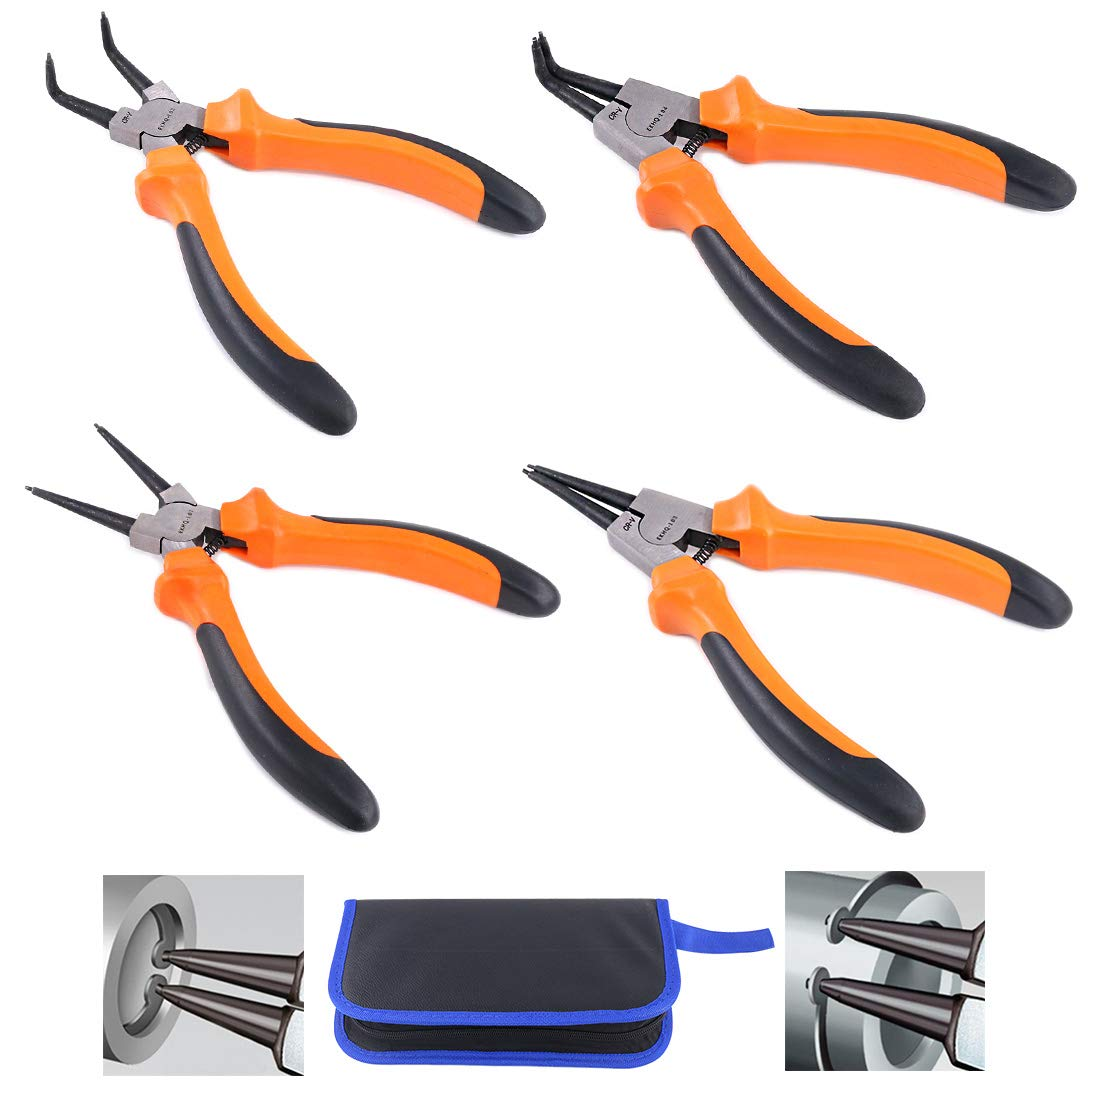 Glarks 4Pcs 7-Inch Snap Ring Pliers Set Heavy Duty Internal/External Circlip Pliers Kit with Straight/Bent Jaw for Ring Remover Retaining, with Leather Bag by Glarks